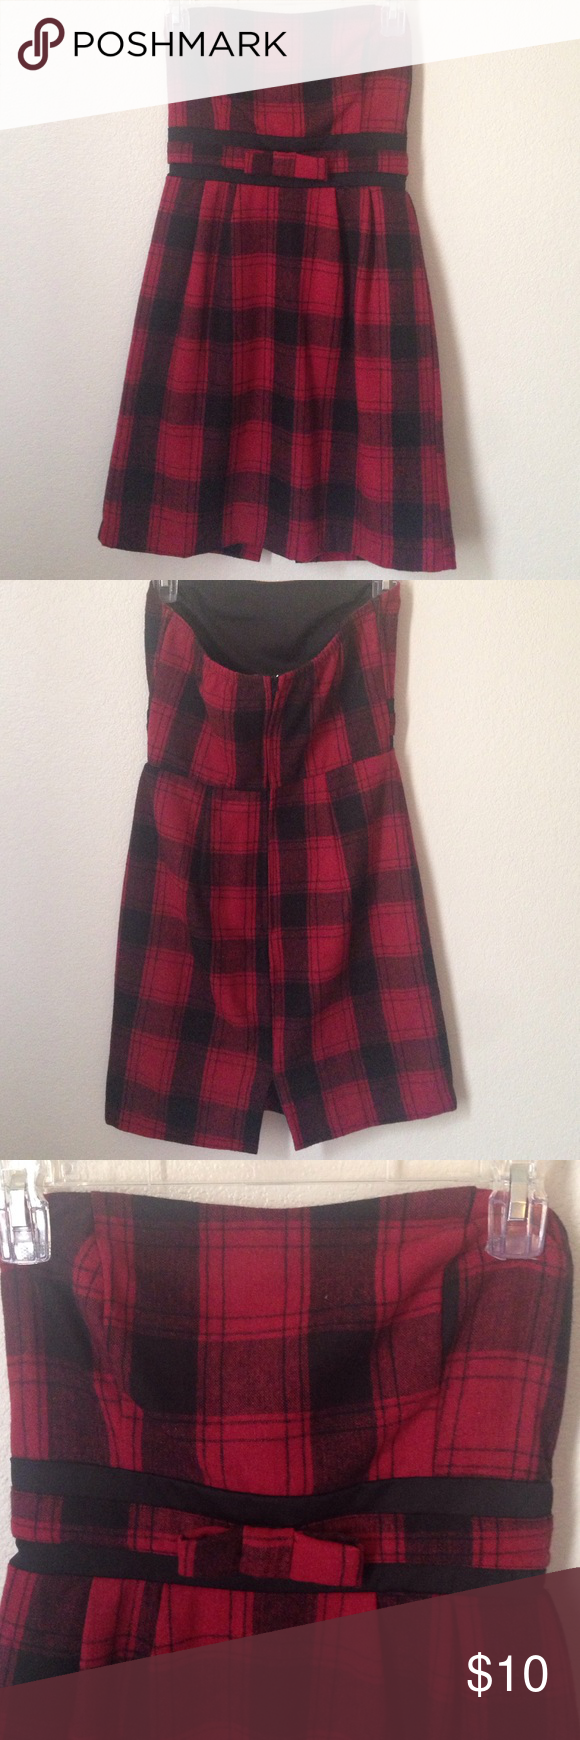 Red flannel around waist  Strapless black and red flannel dress This dress is made of a thick